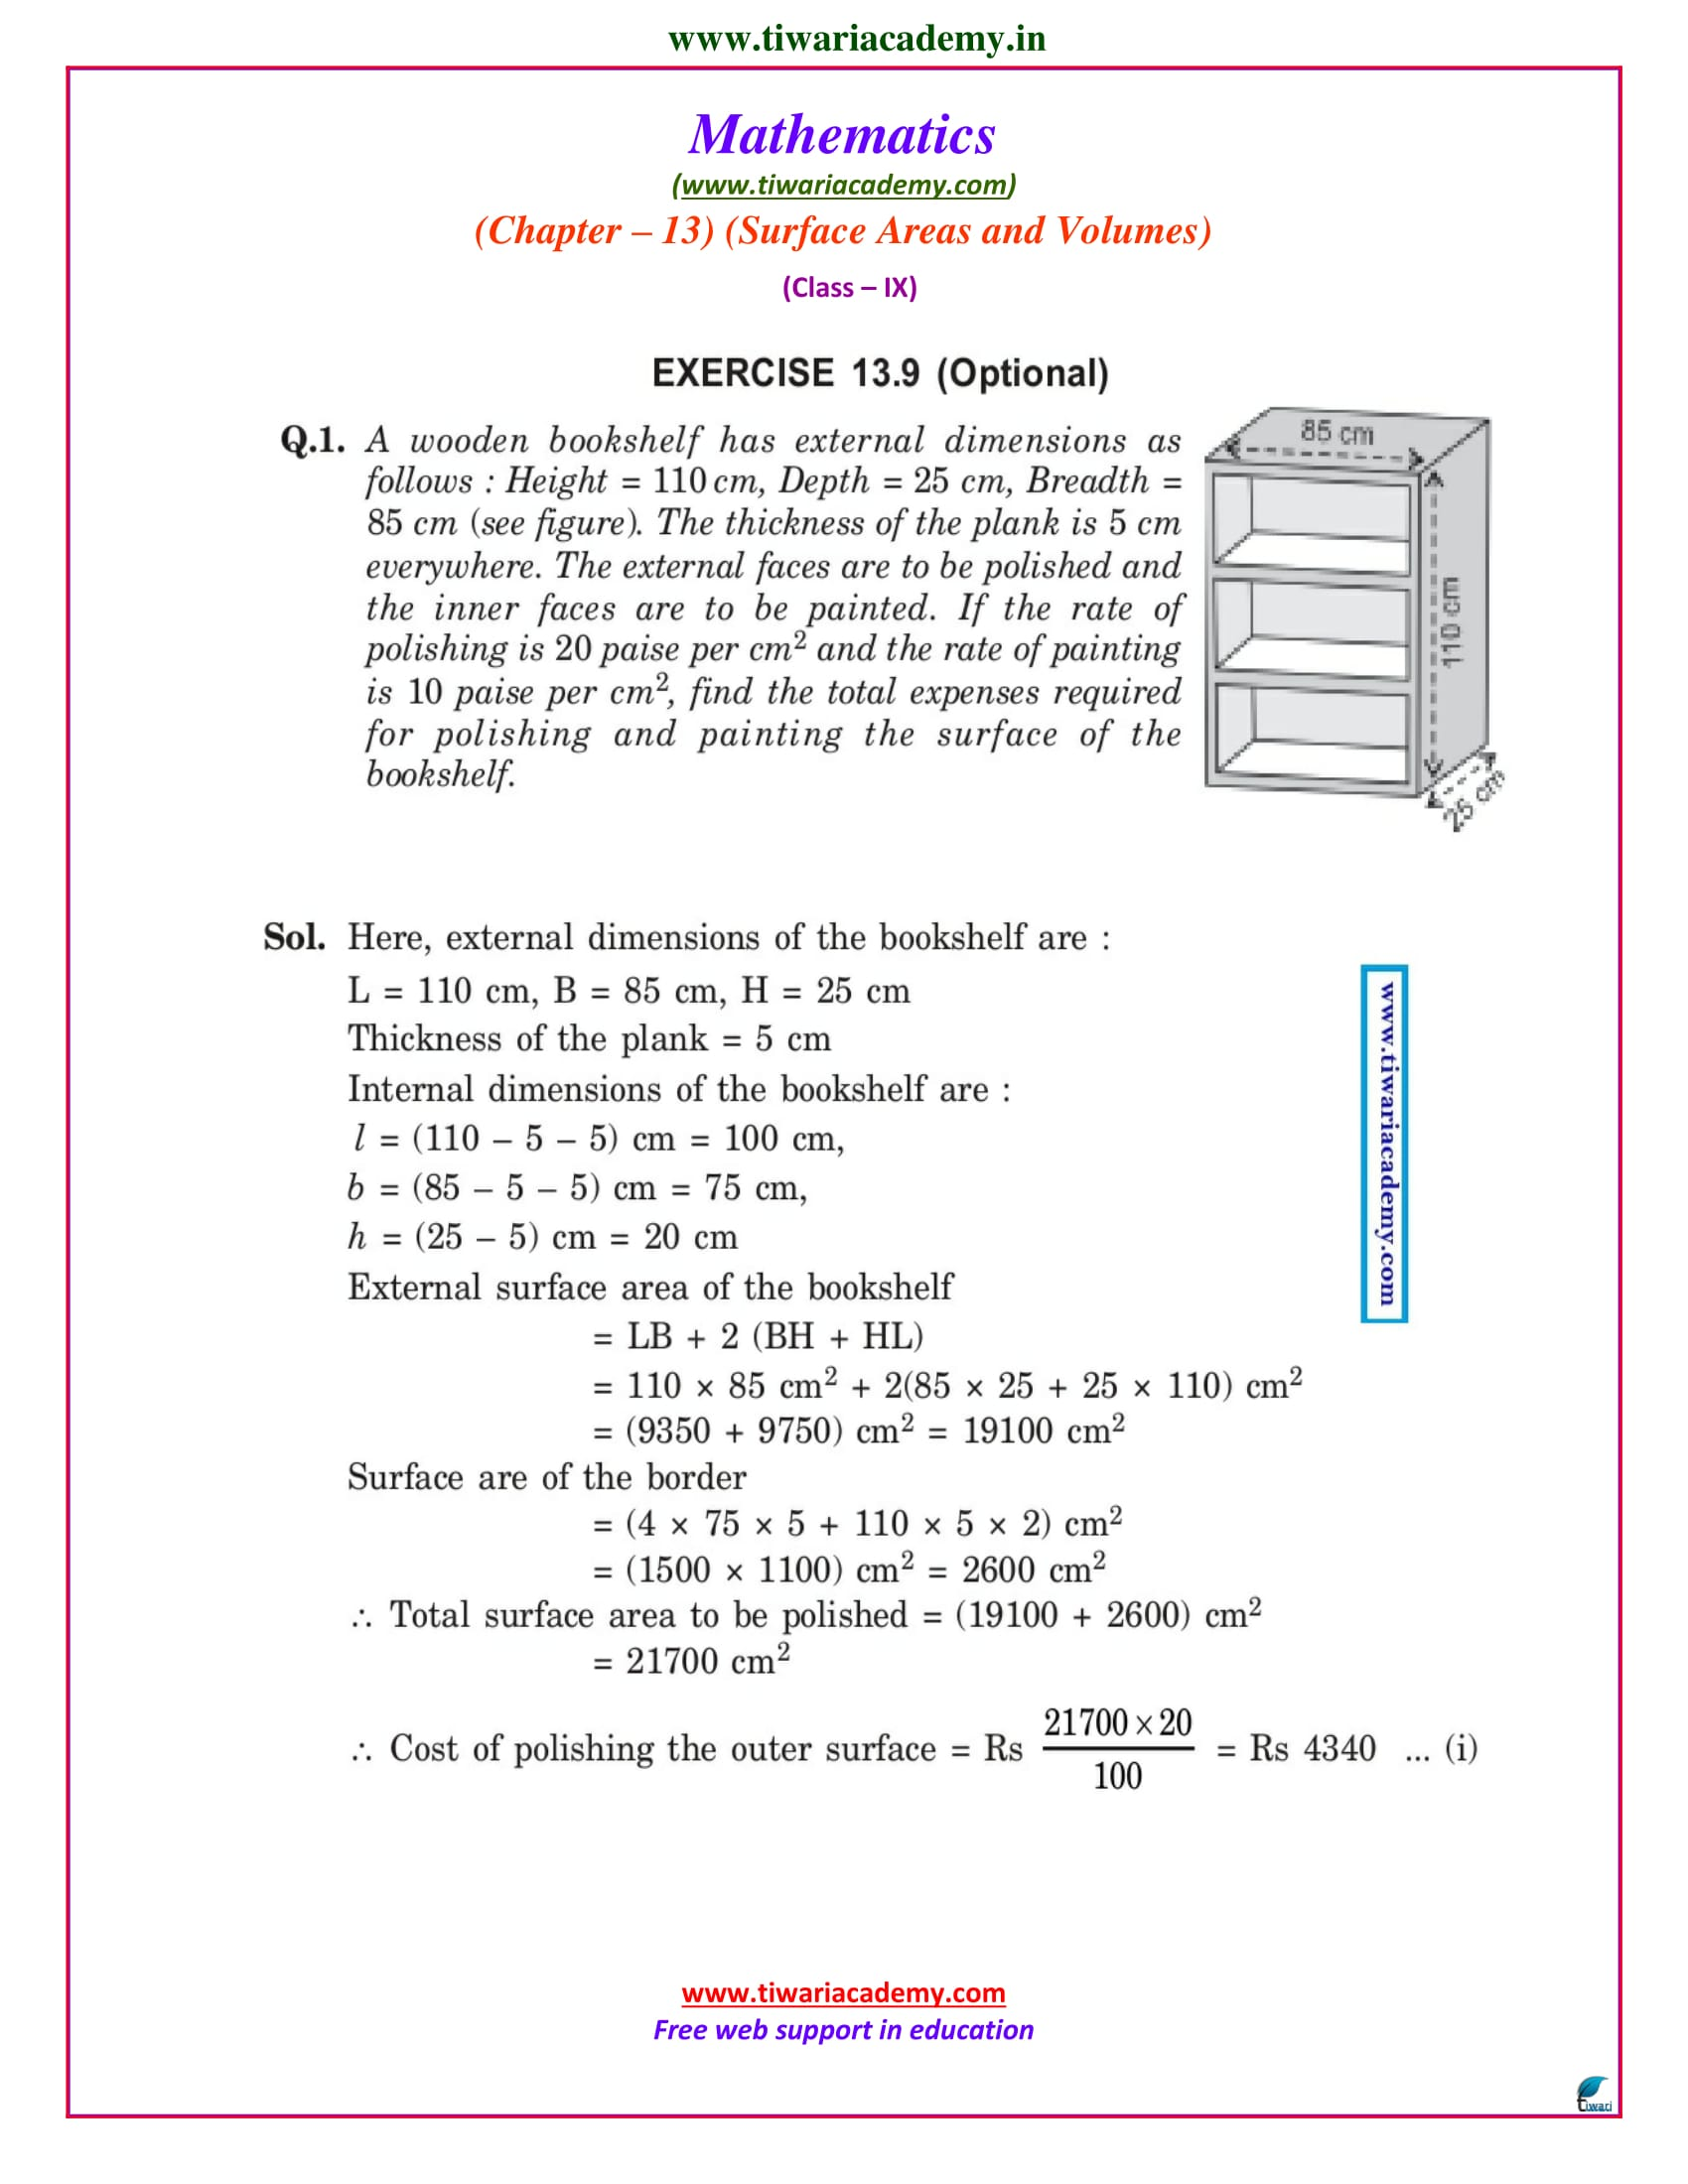 NCERT Solutions for Class 9 Maths Chapter 13 Exercise 13.9 Optional